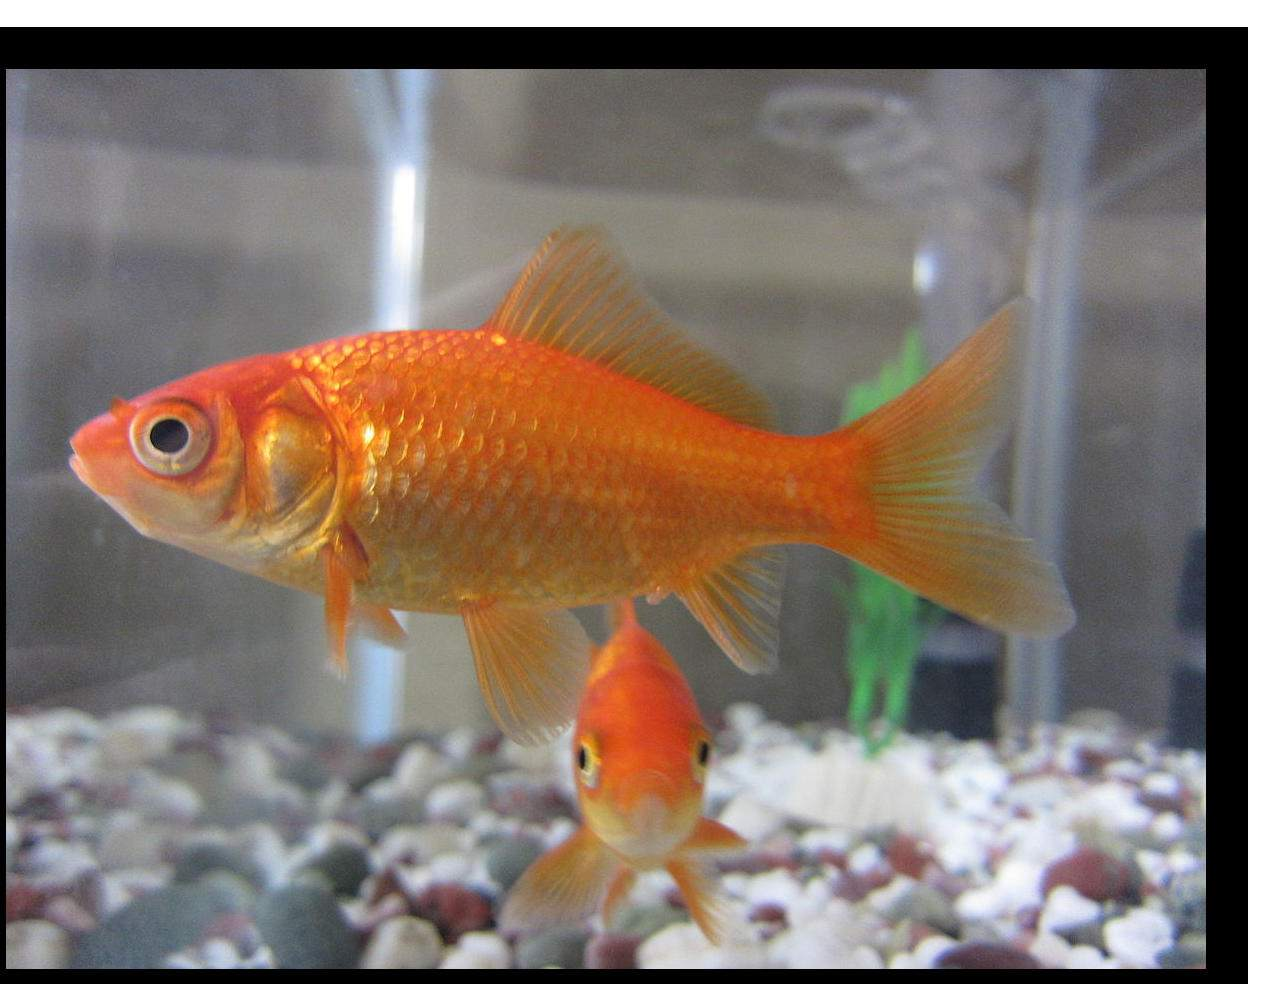 How do you take care of goldfish in a tank?